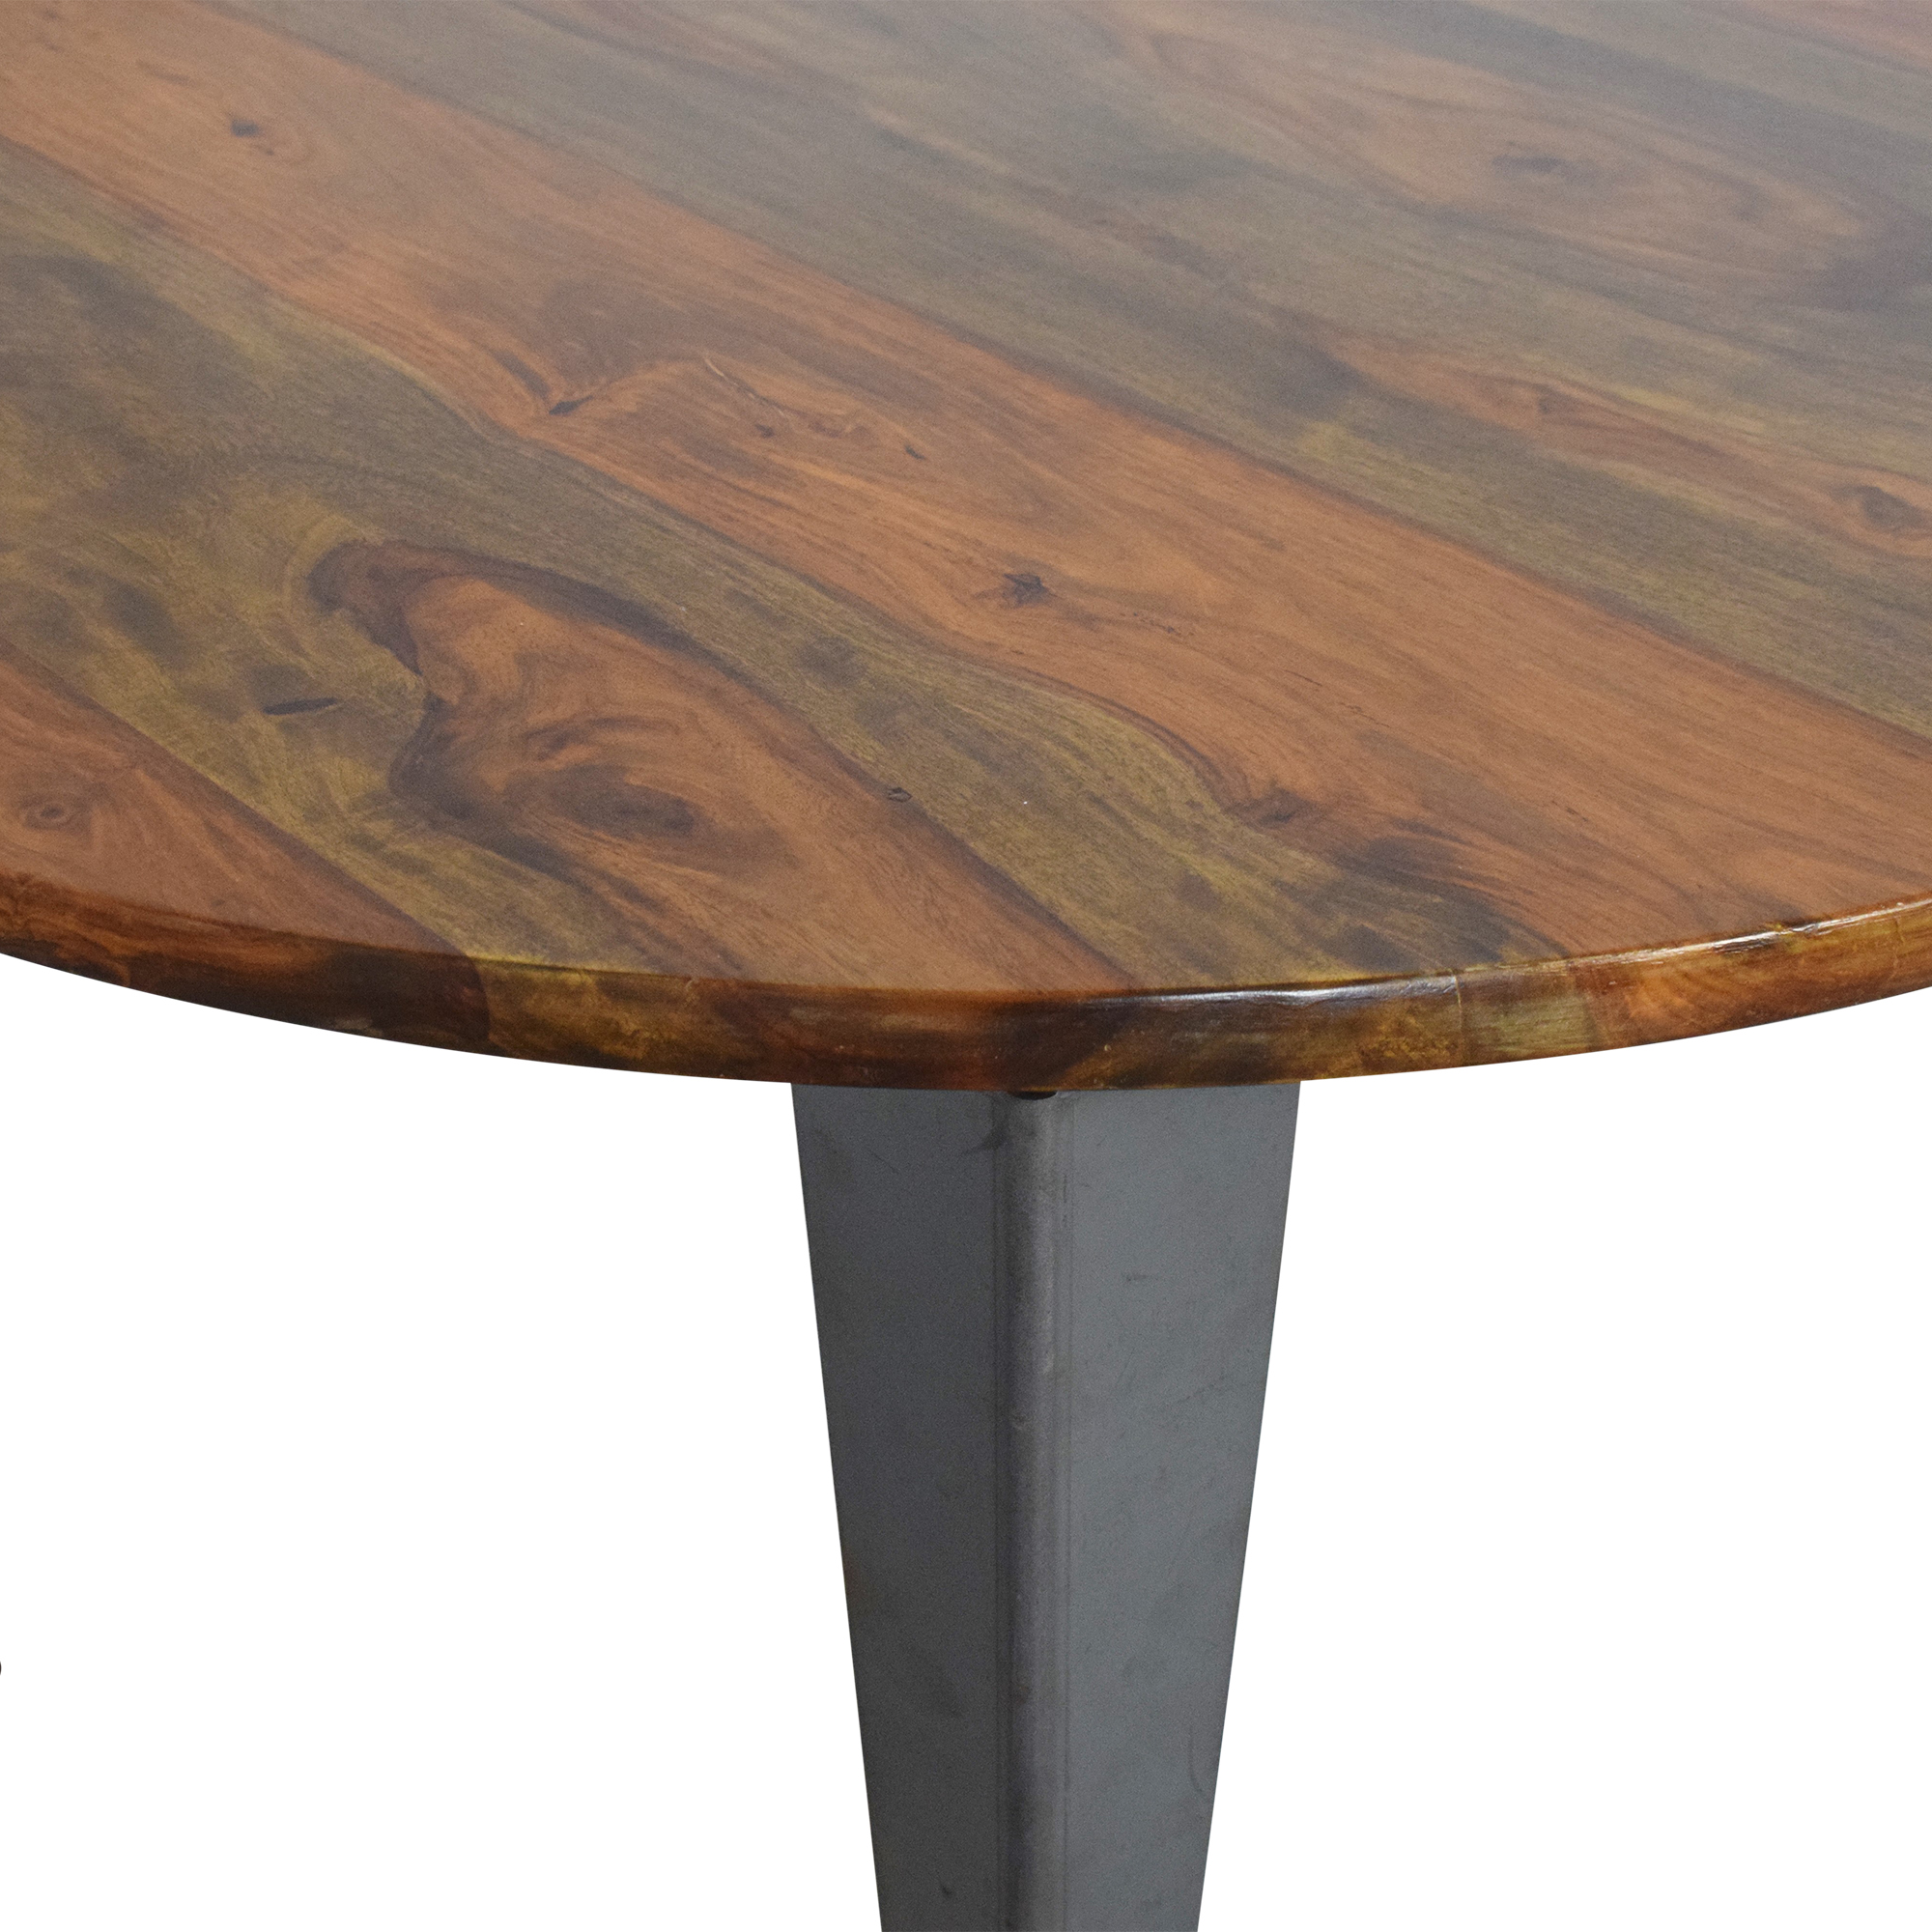 Brownstone Furniture Brownstone Furniture Round Dining Table nyc